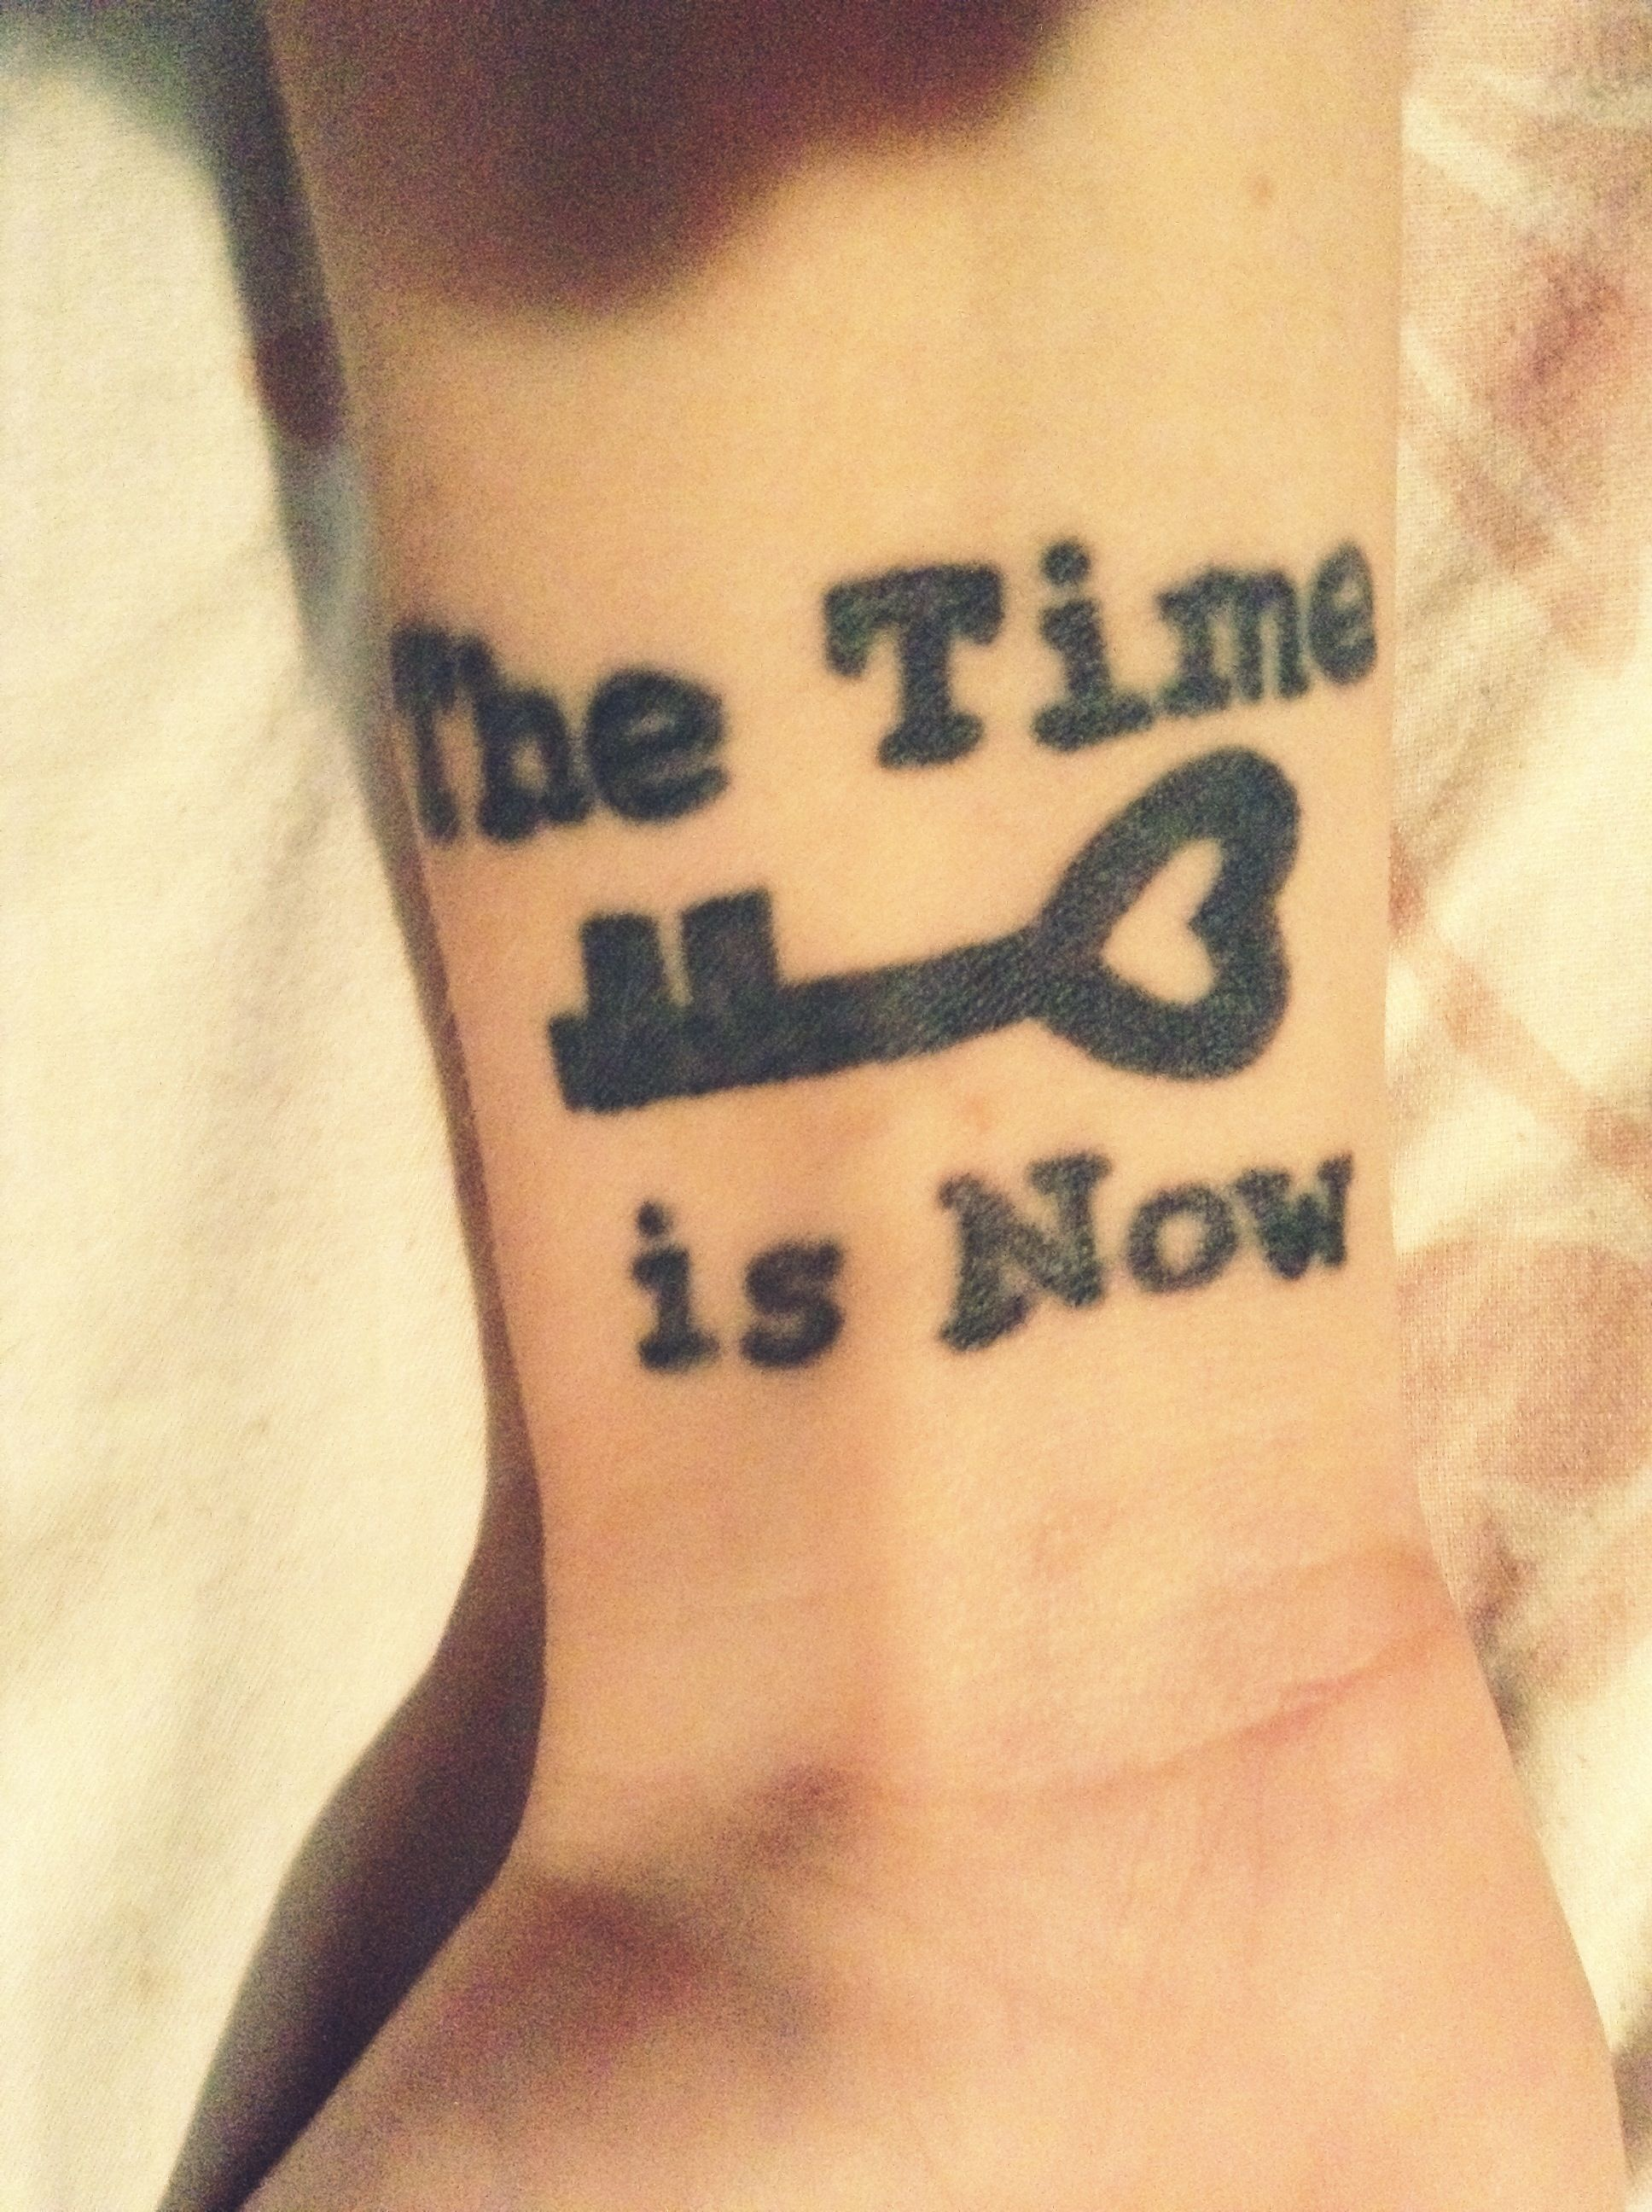 My Wrist Tattoo ! The time is now.